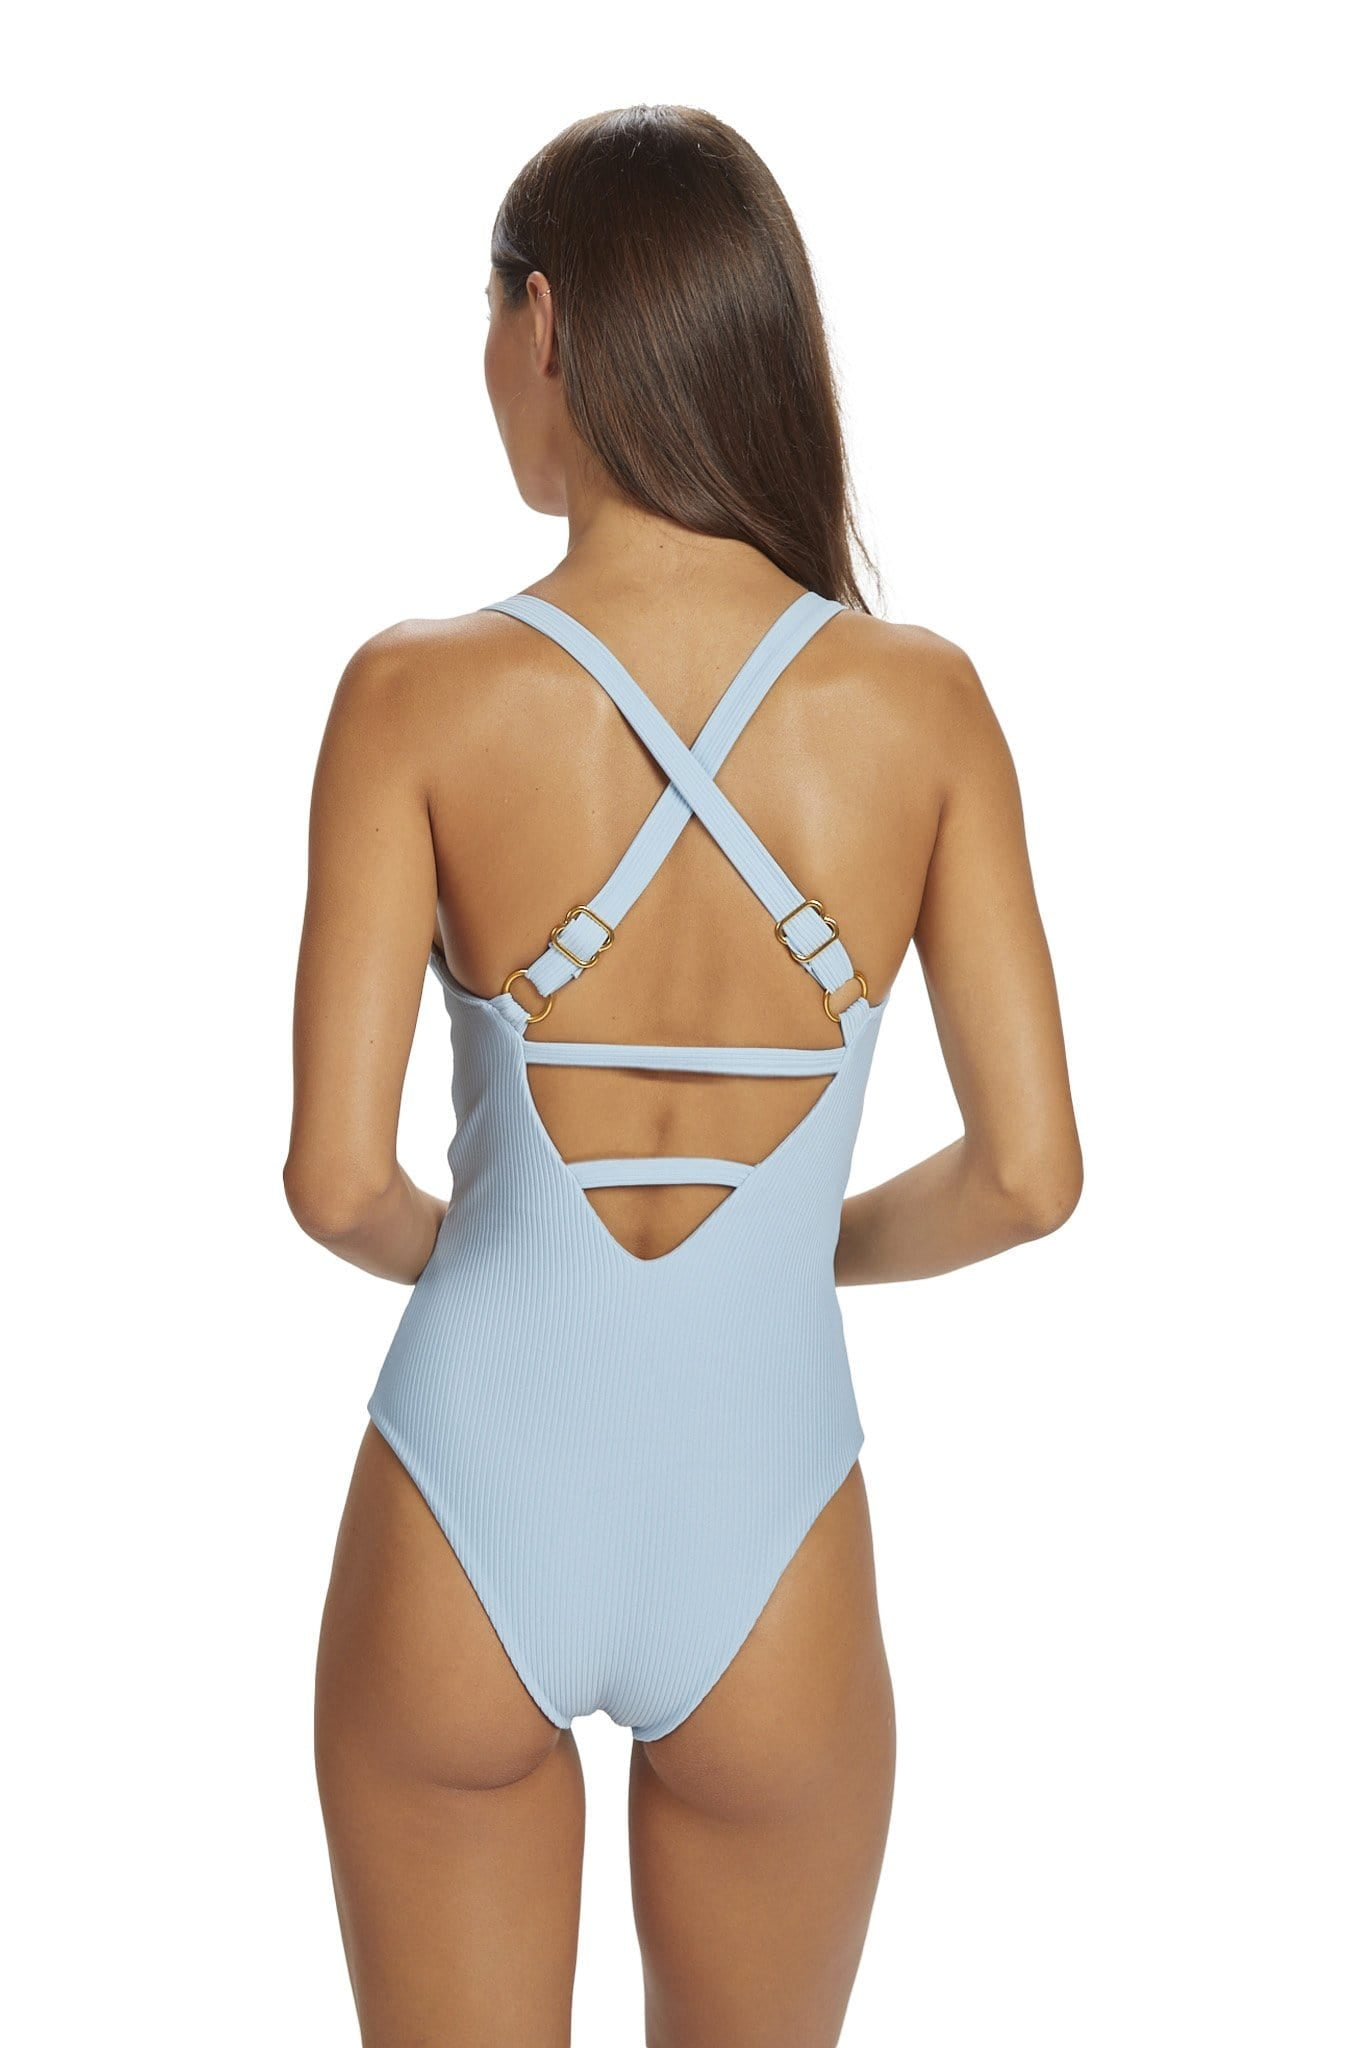 Kailua One Piece Cheeky Coverage Baby Blue Rib